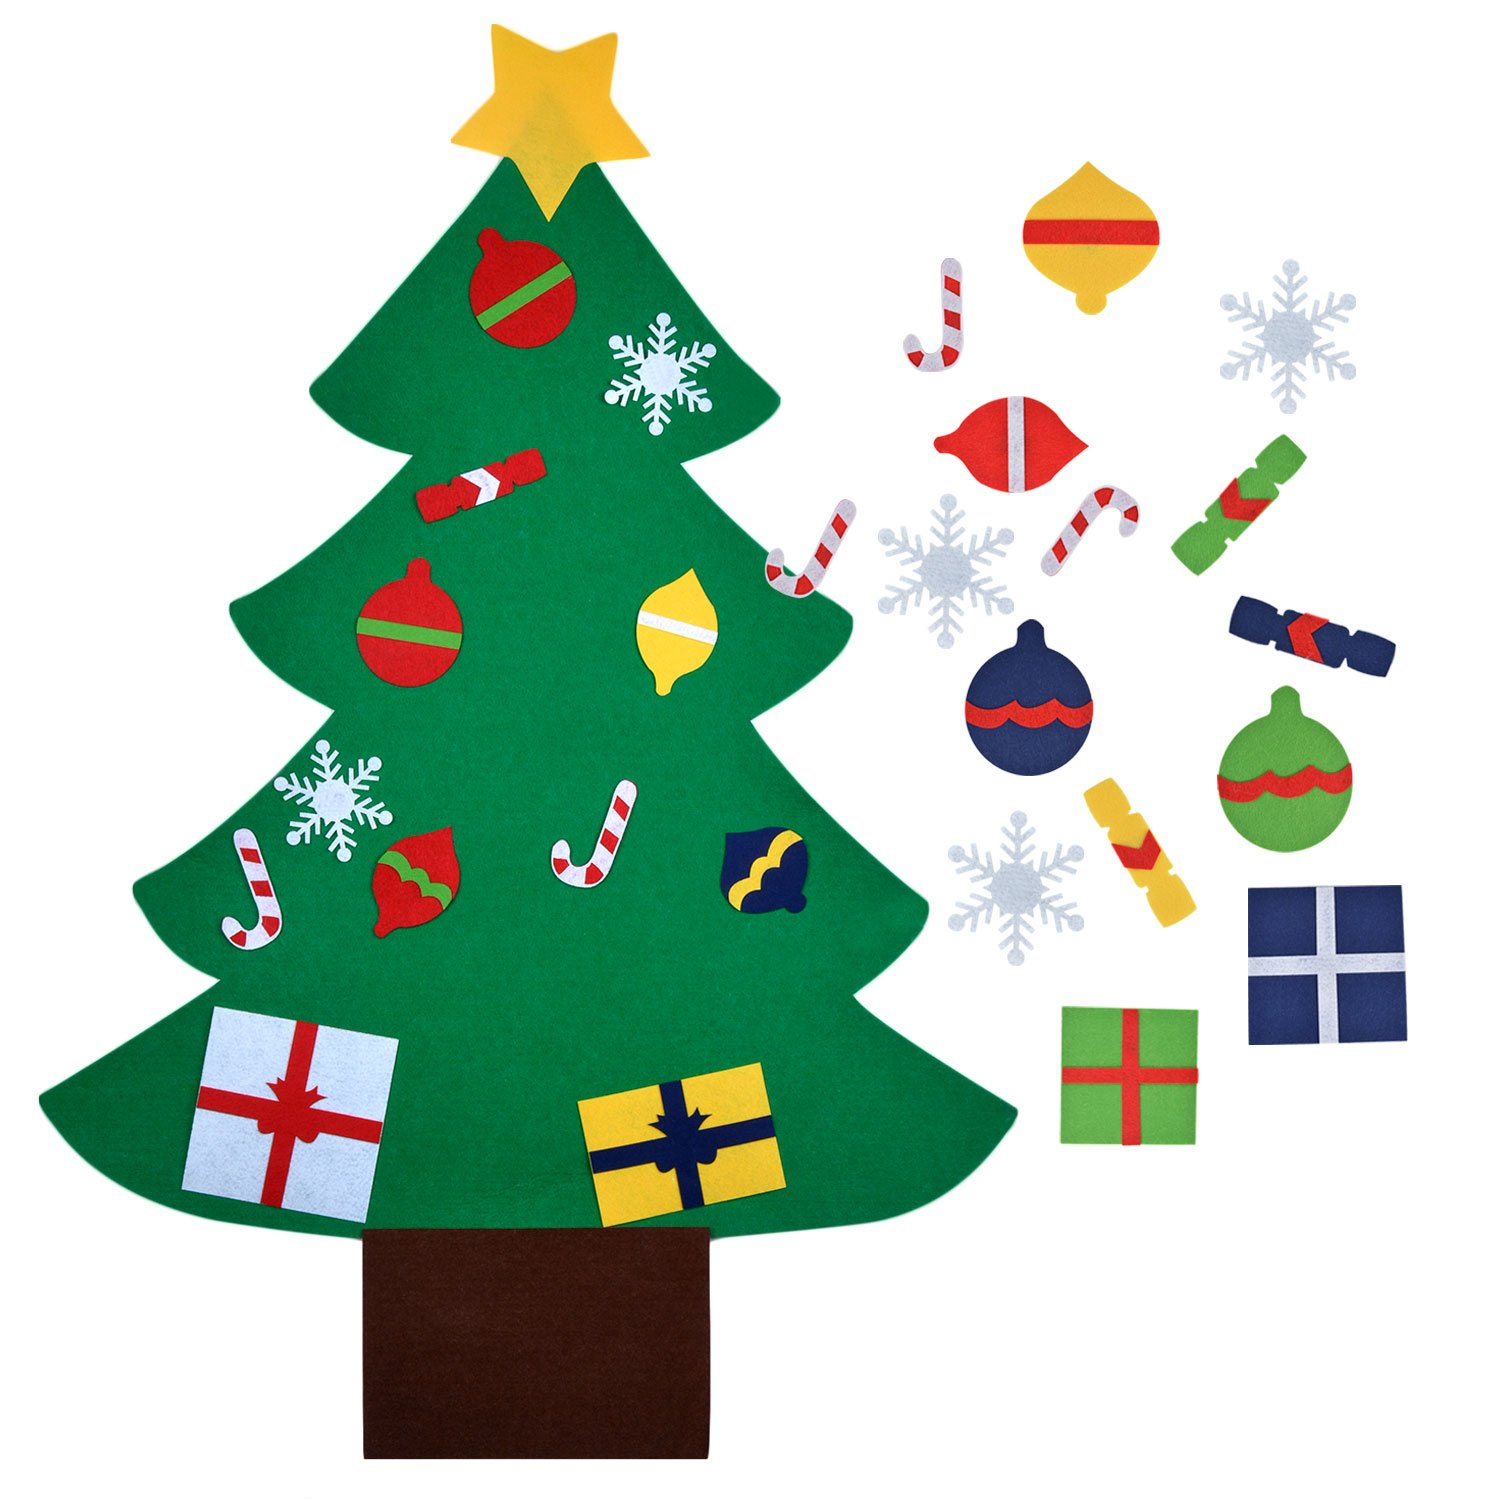 Coofit Felt Christmas Tree Decorations 3.3ft DIY Christmas Tree with 28 Pcs Ornaments Christmas Wall Decor with Hanging Rope for Kids Xmas Gifts Home Door Wall Decoration COOFTI